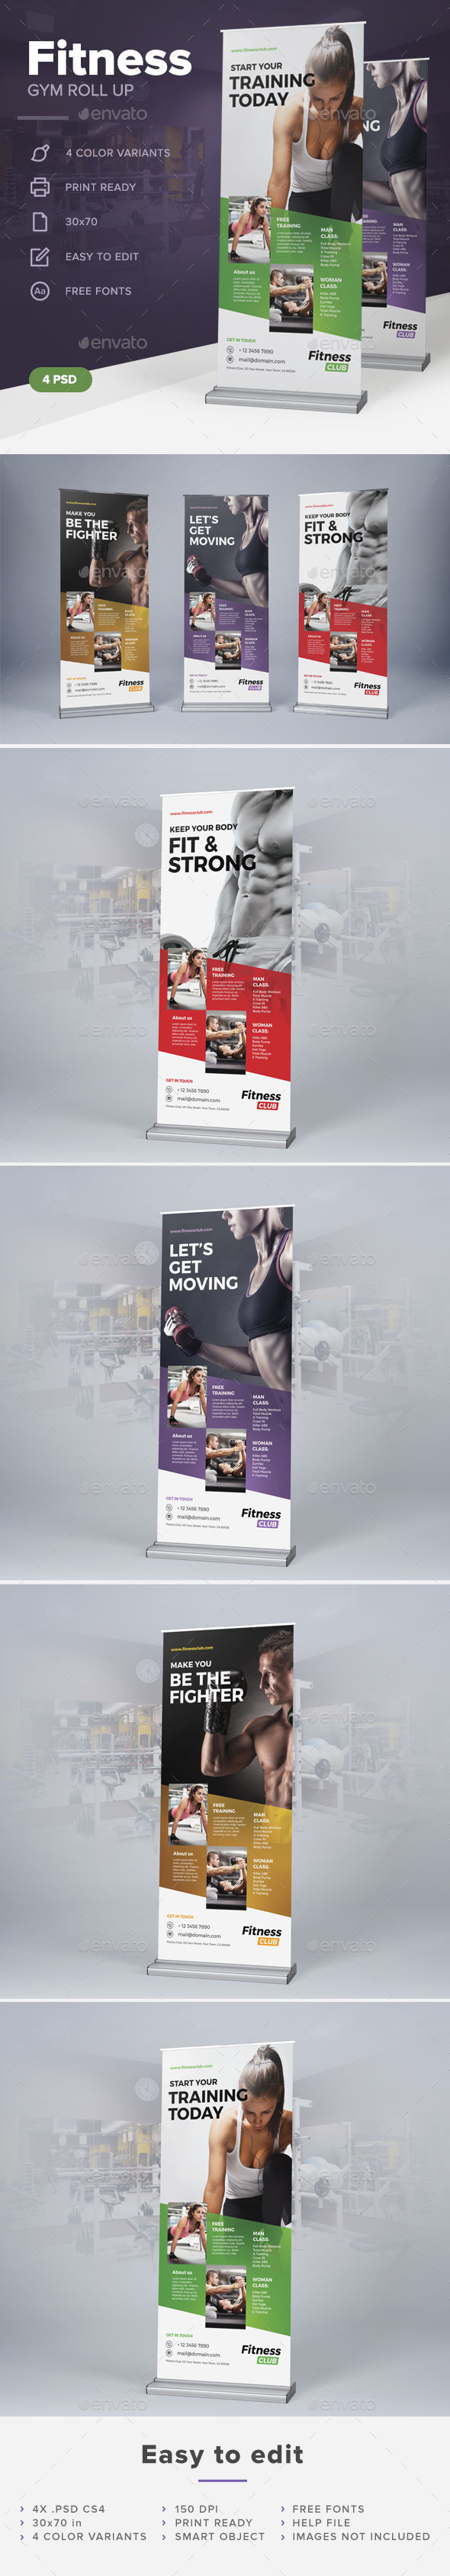 Fitness Gym Roll Up - Signage Print Templates